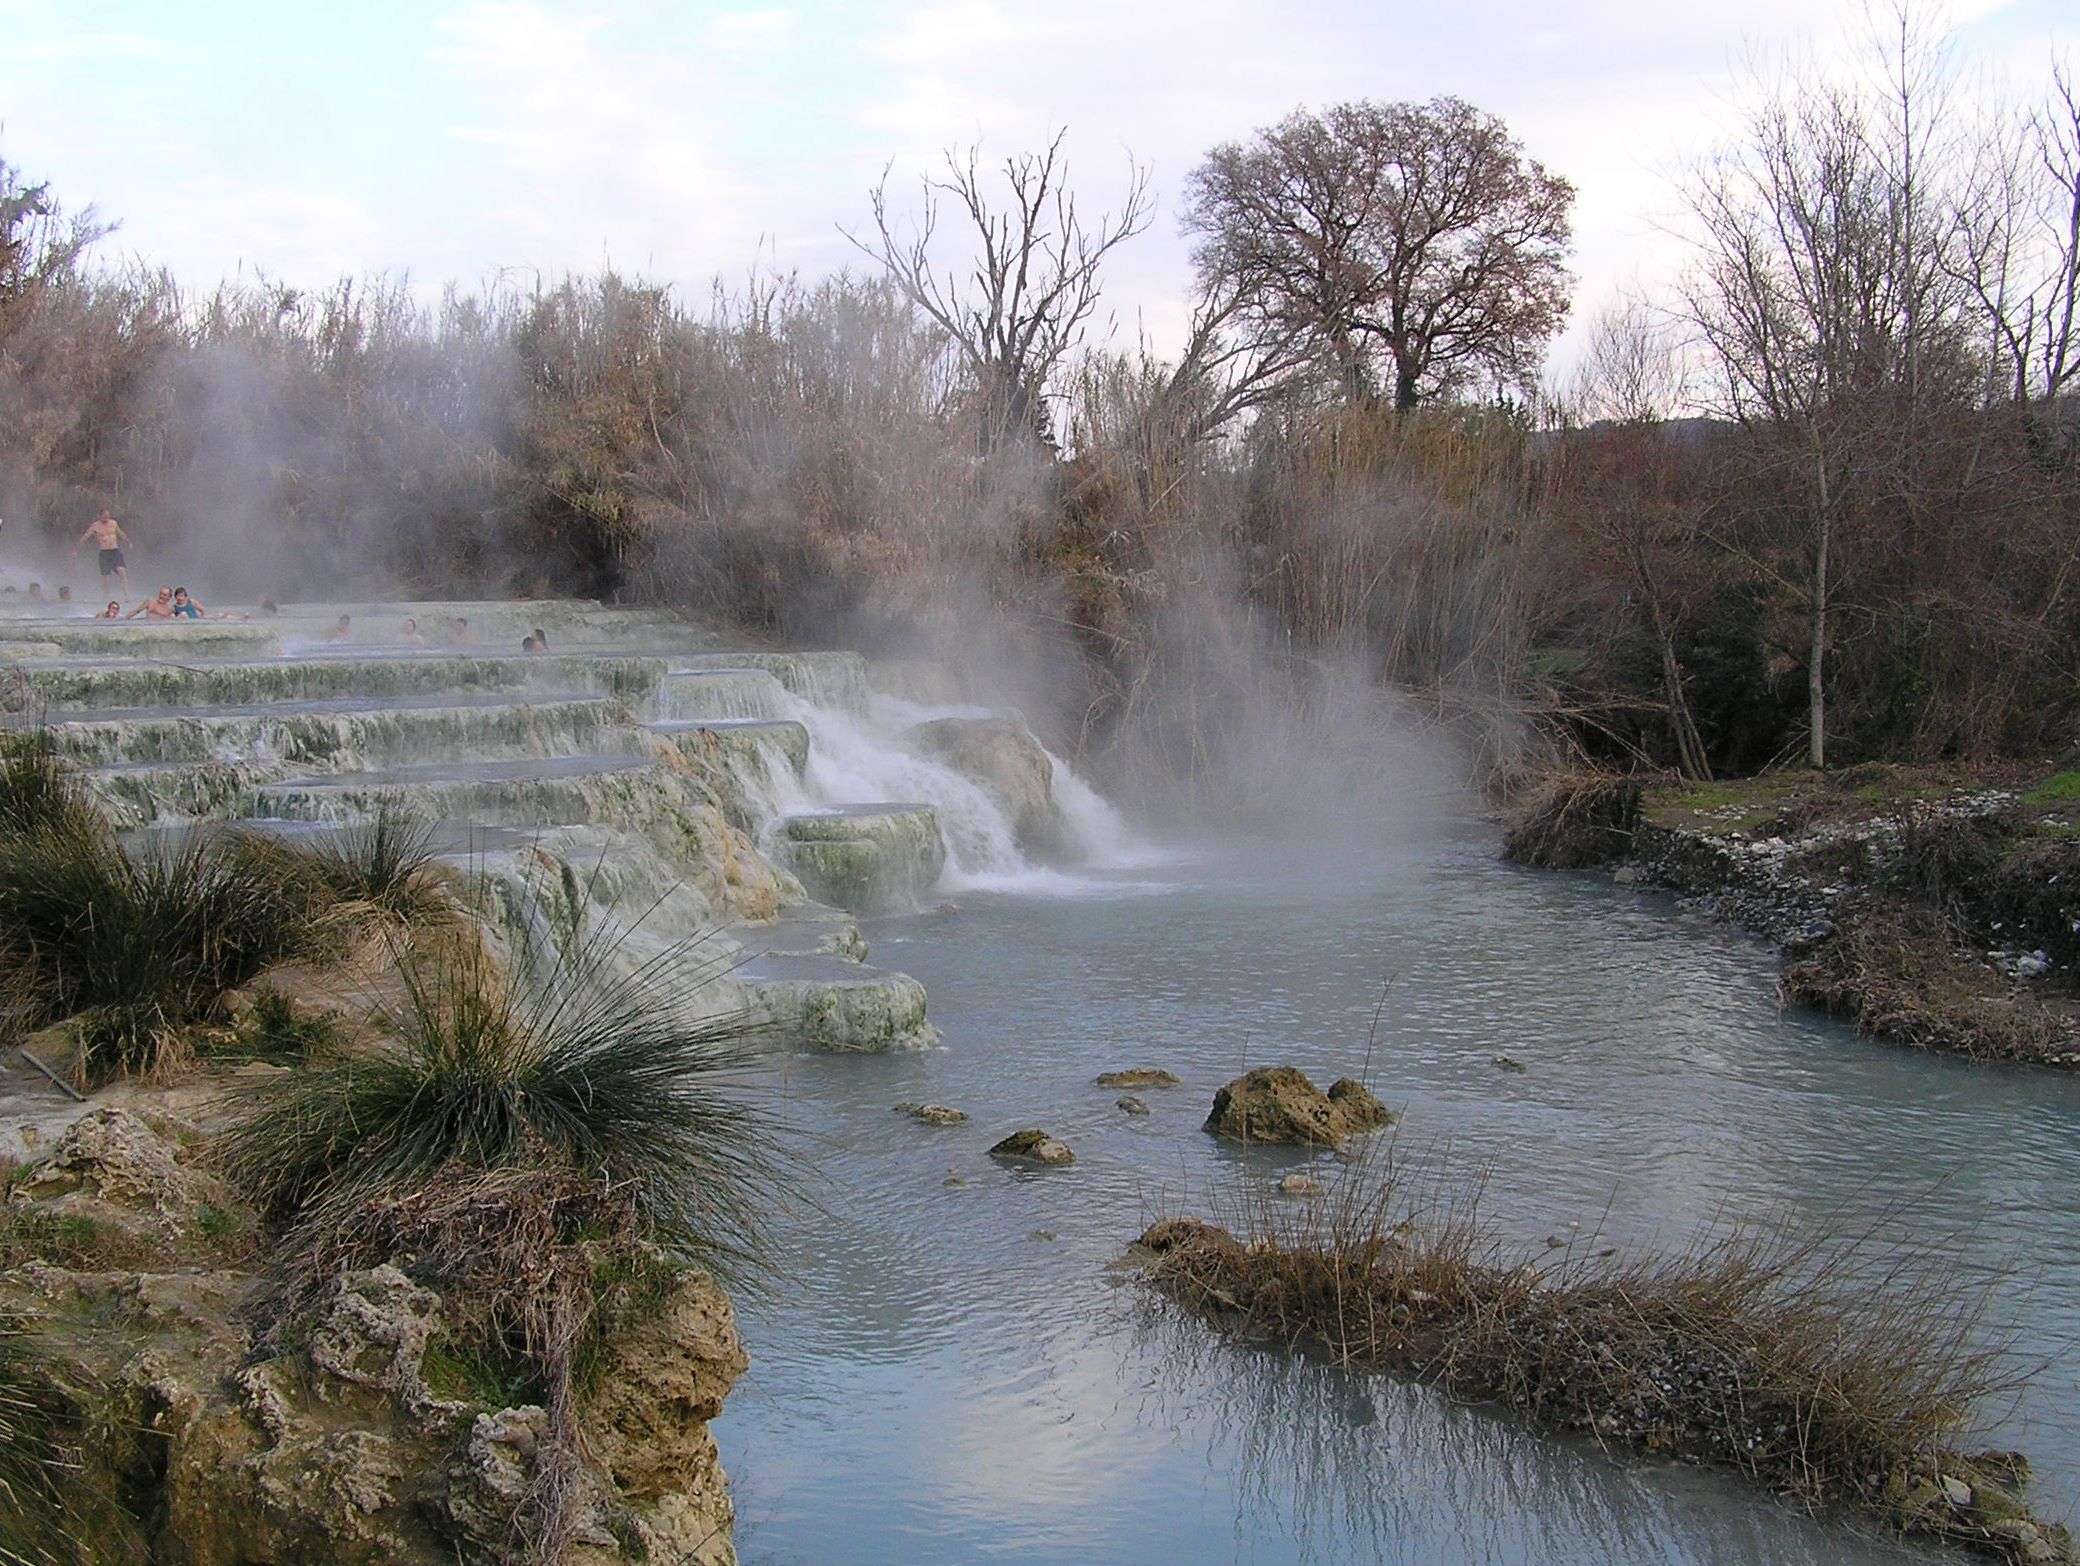 Bagno Vignoni Free Thermal Baths Thermal Baths In Tuscany And Lazio Caesar Luxury Travel